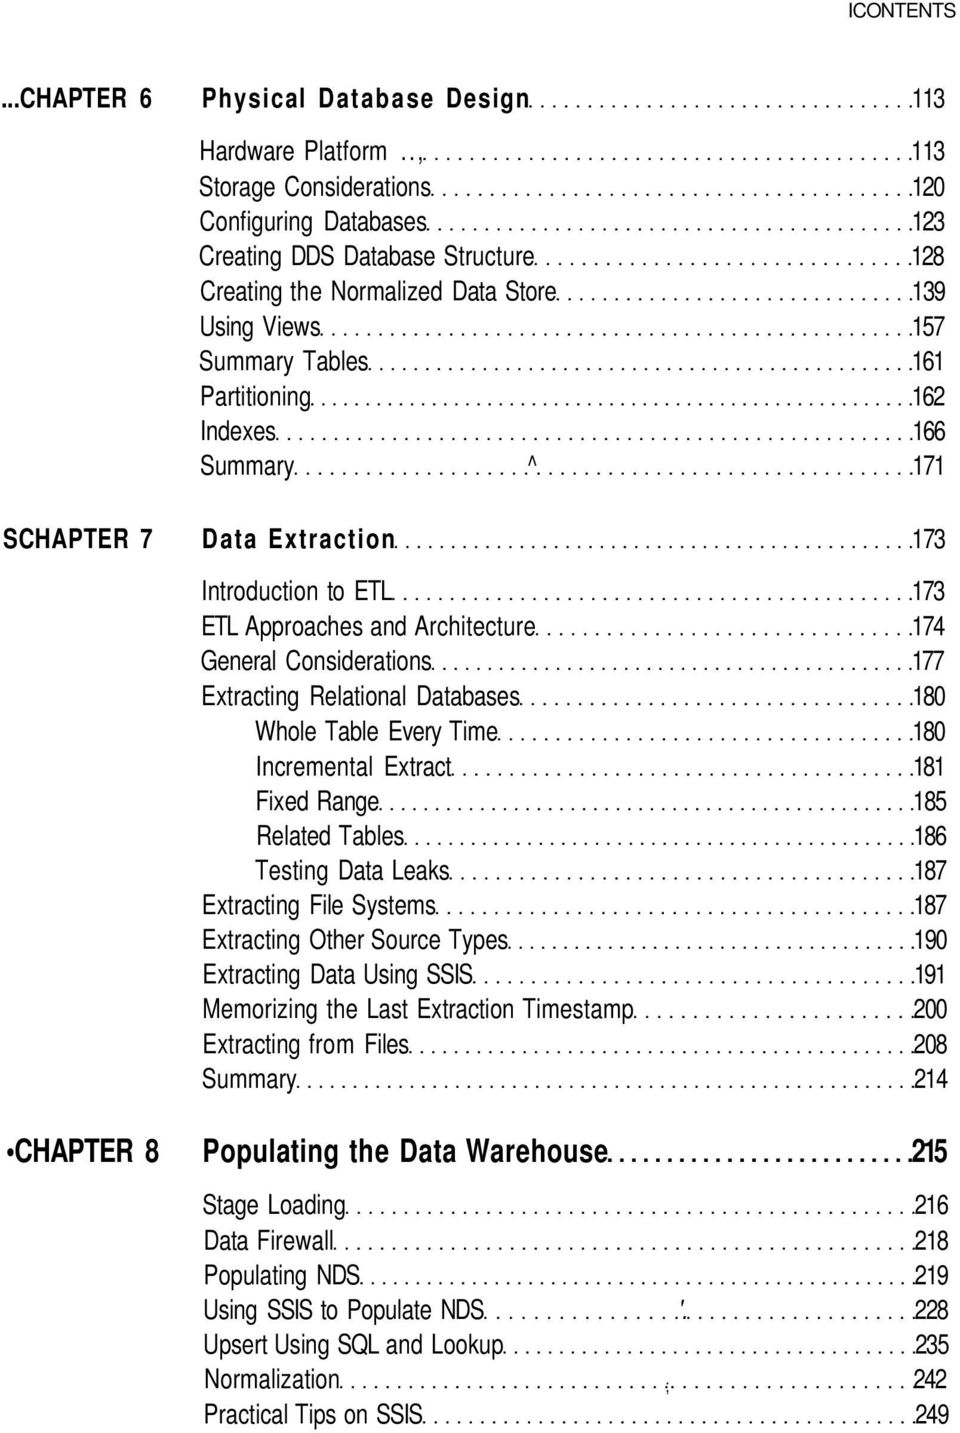 Summary ^ 171 SCHAPTER 7 Data Extraction 173 Introduction to ETL 173 ETL Approaches and Architecture 174 General Considerations 177 Extracting Relational Databases 180 Whole Table Every Time 180